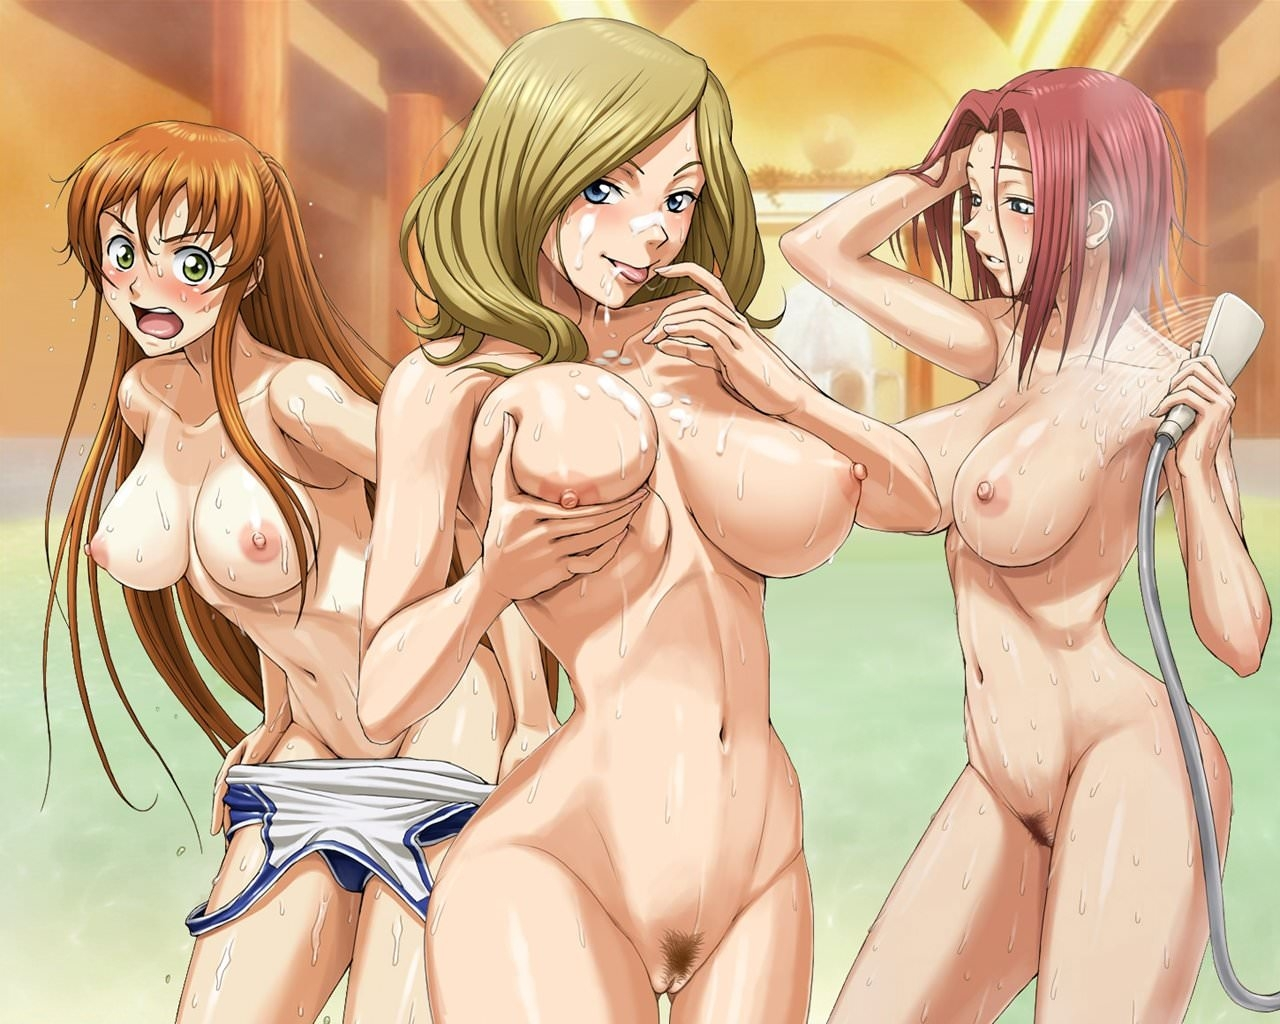 Naked anime women games fucked picture